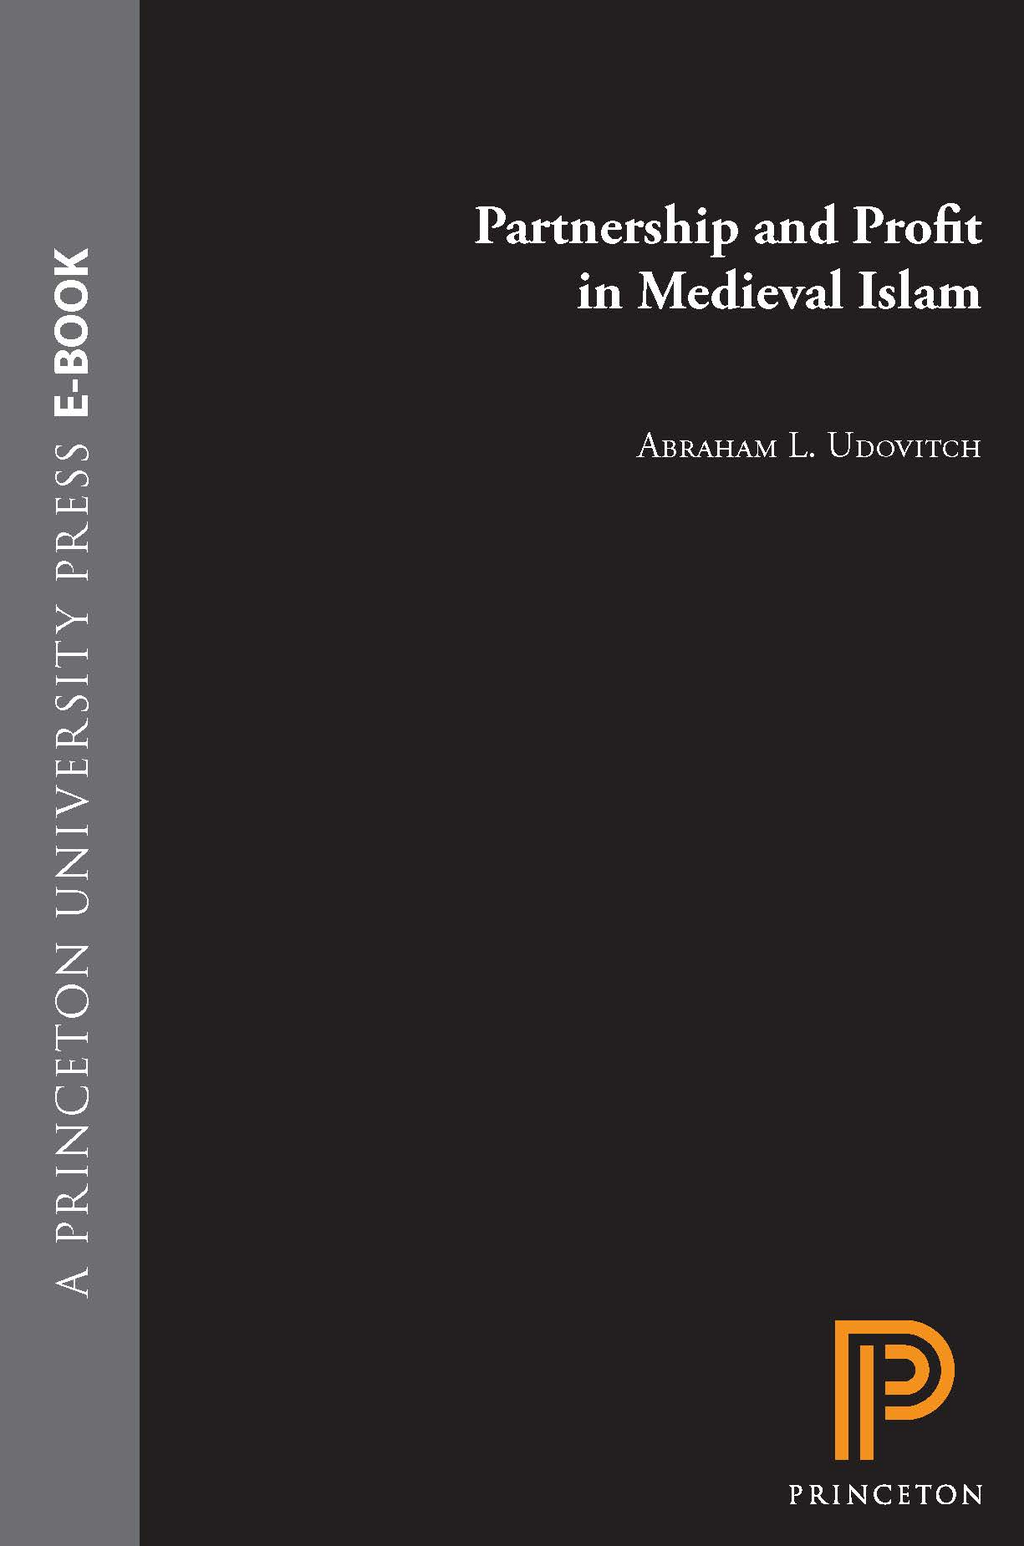 Partnership and Profit in Medieval Islam By: Abraham L. Udovitch